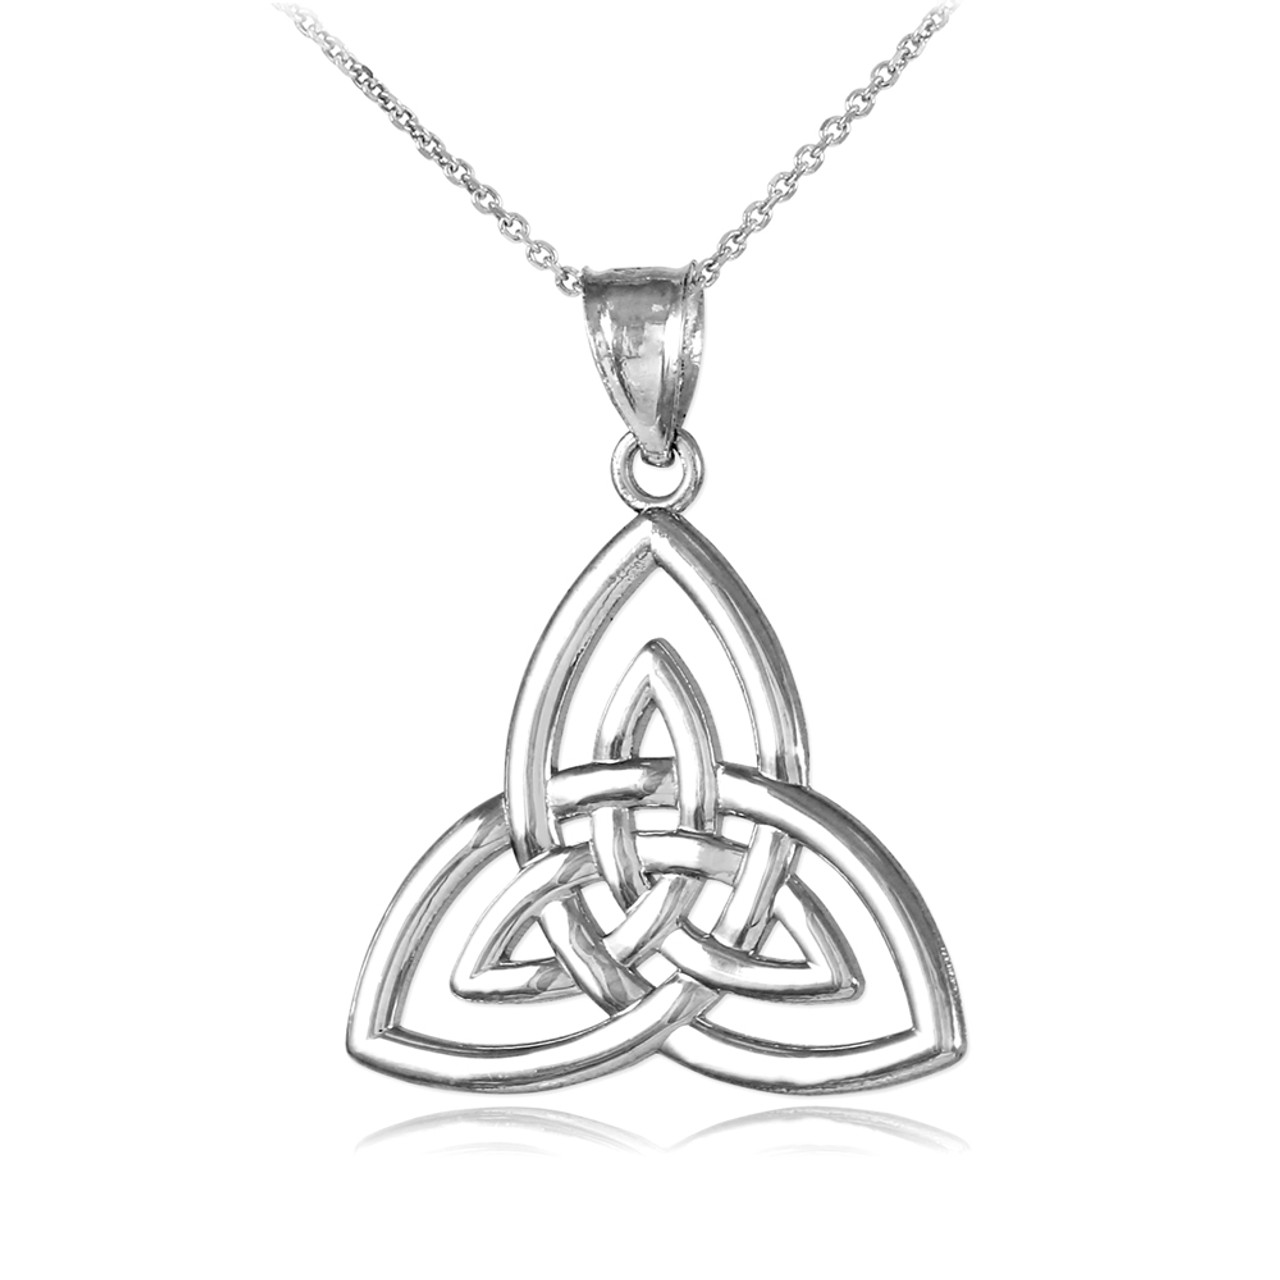 White gold triquetra trinity knot pendant white gold triquetra trinity knot pendant necklace aloadofball Choice Image